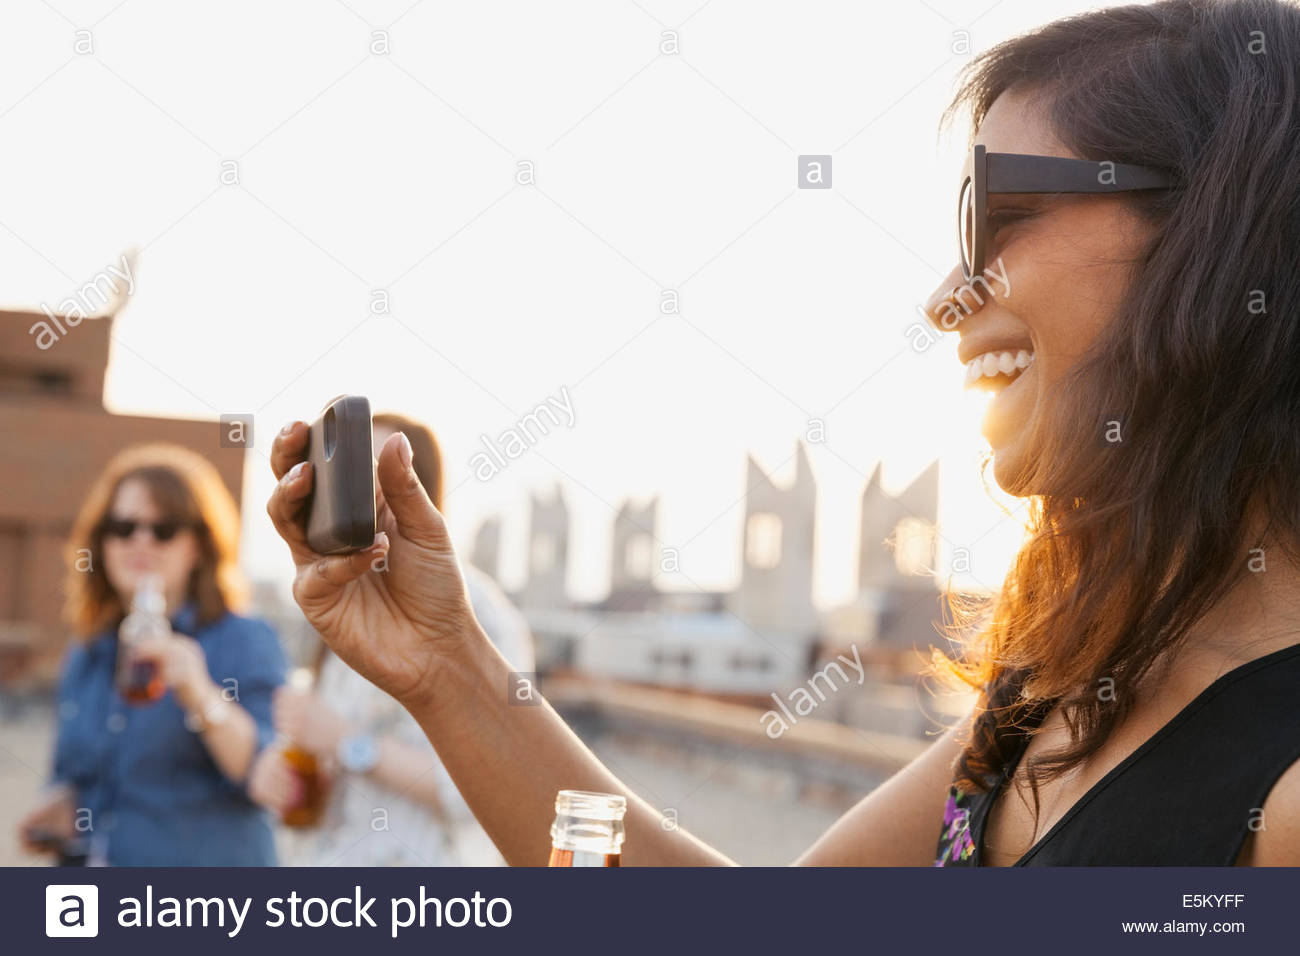 Smiling woman taking photos at urban rooftop party - Stock Image